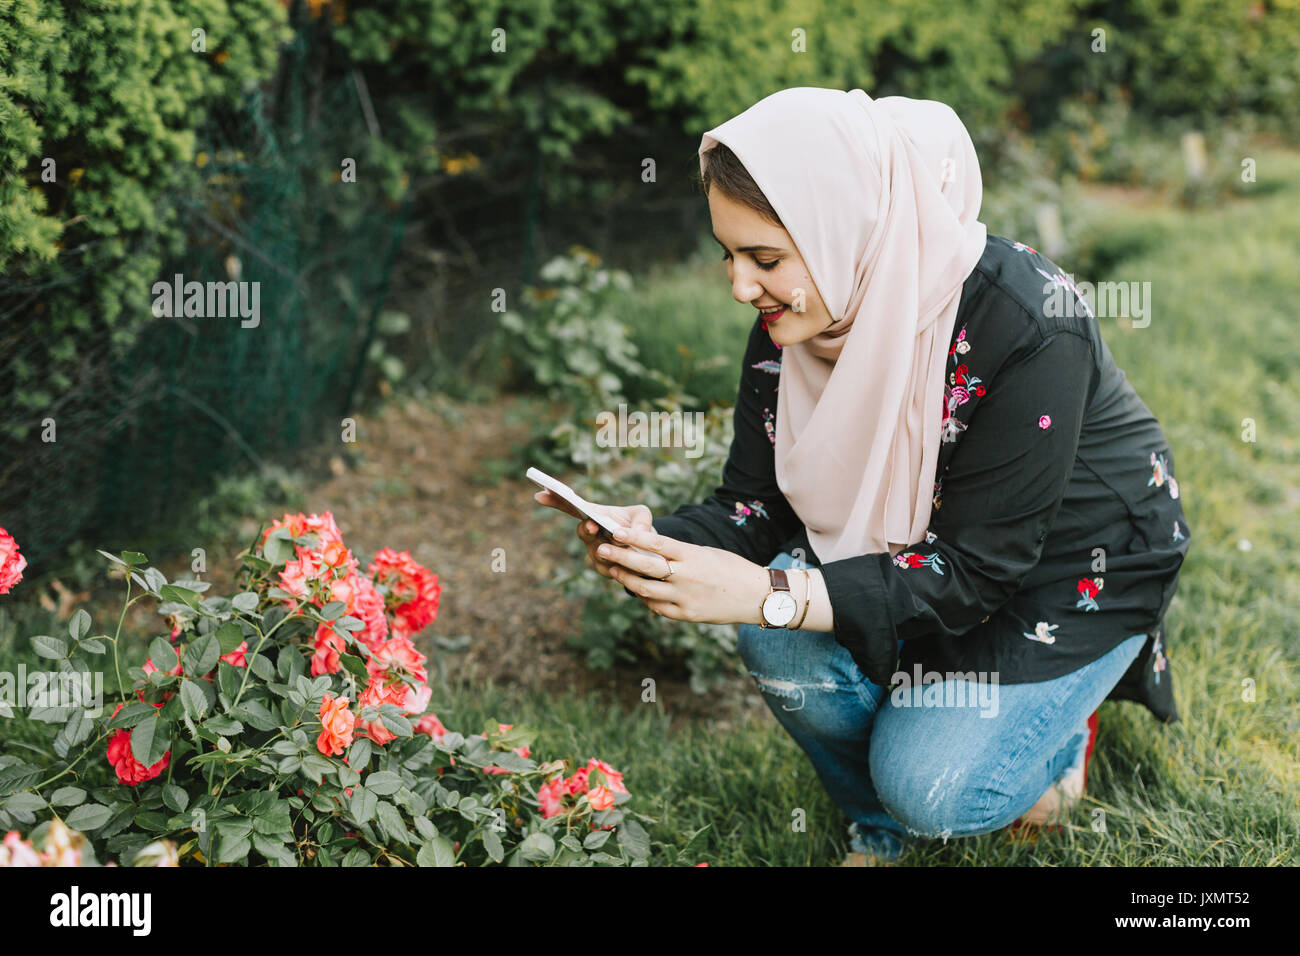 Young woman wearing hijab photographing flowers with smartphone - Stock Image